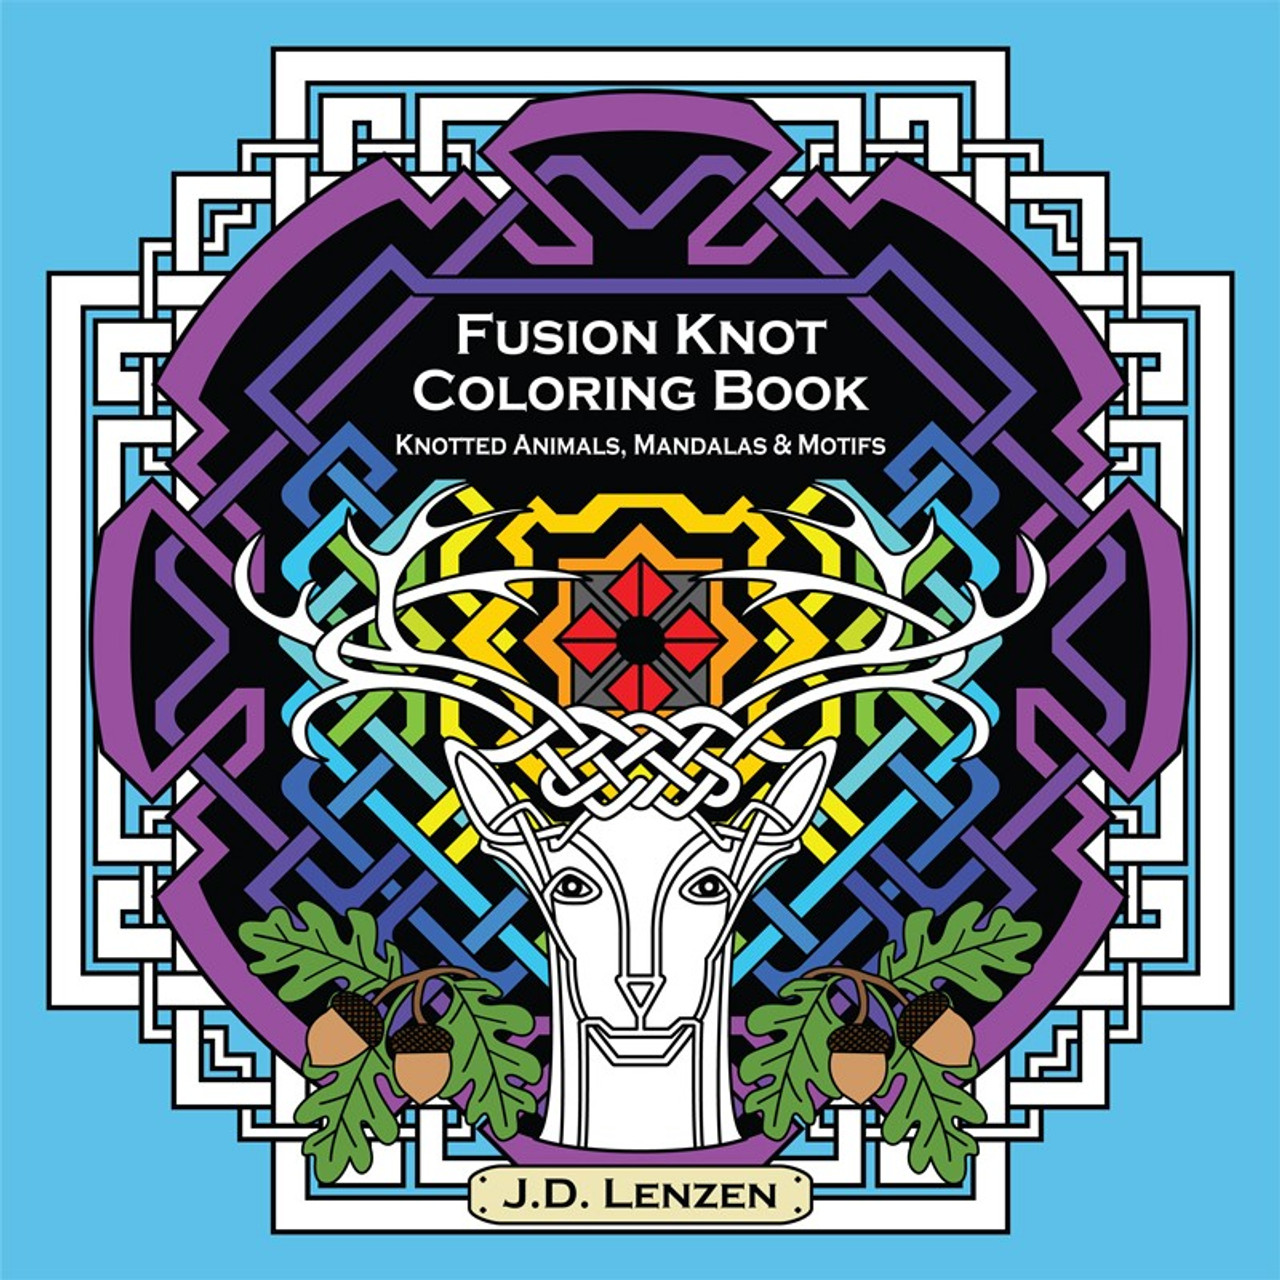 Fusion Knot Coloring Book